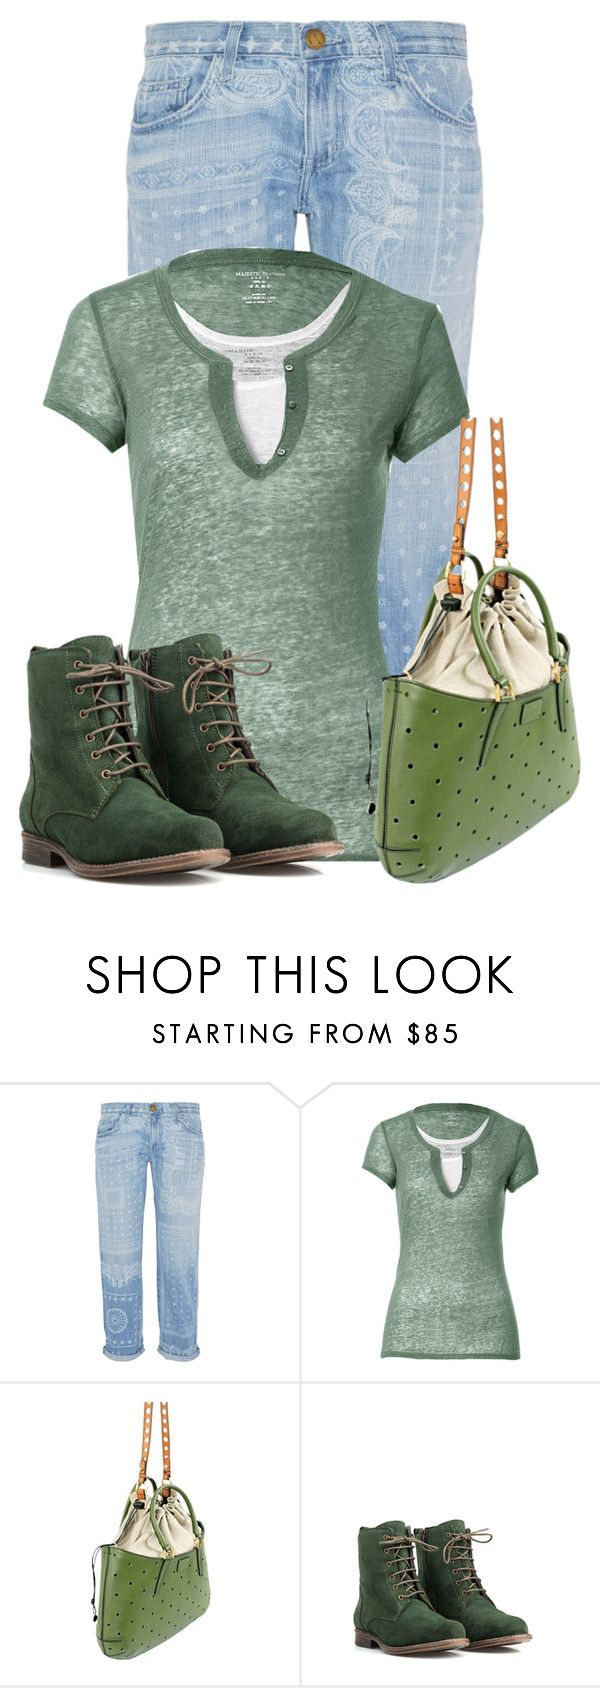 """""""Untitled #16852"""" by nanette-253 ❤ liked on Polyvore featuring Current/Elliott, Majestic, Fendi and JJ Footwear"""